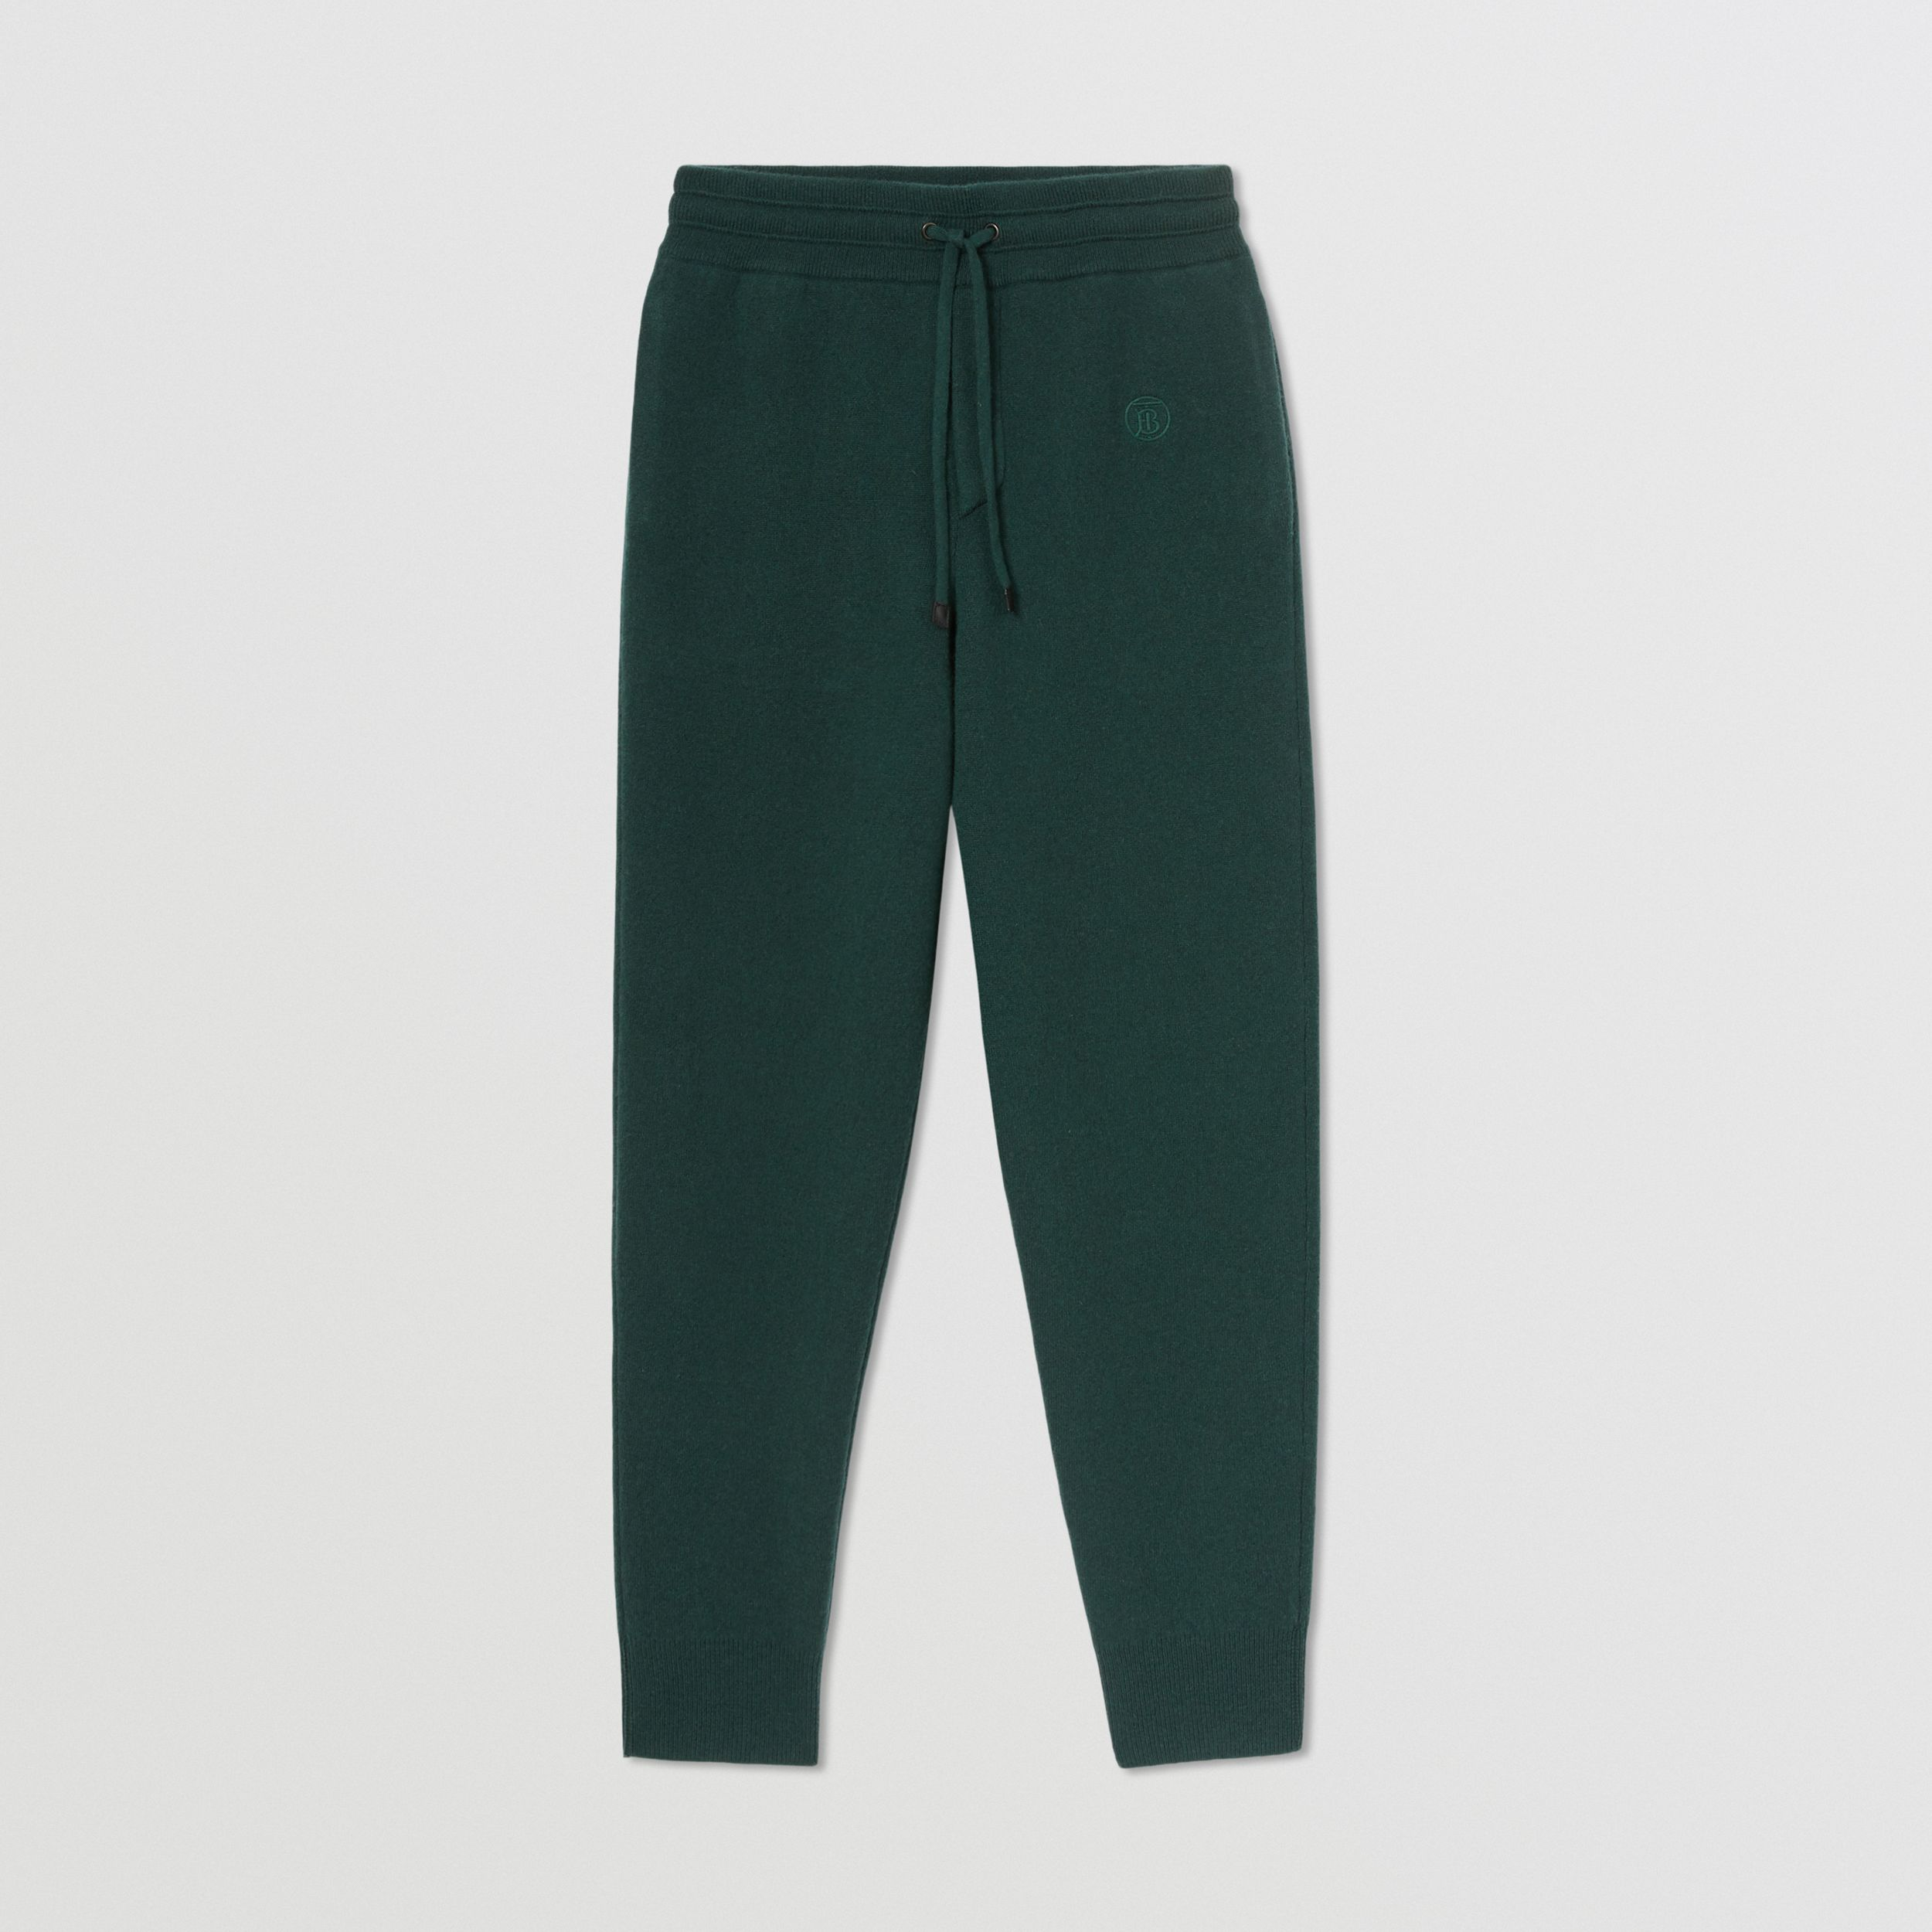 Monogram Motif Cashmere Blend Jogging Pants in Bottle Green - Women | Burberry Hong Kong S.A.R. - 4